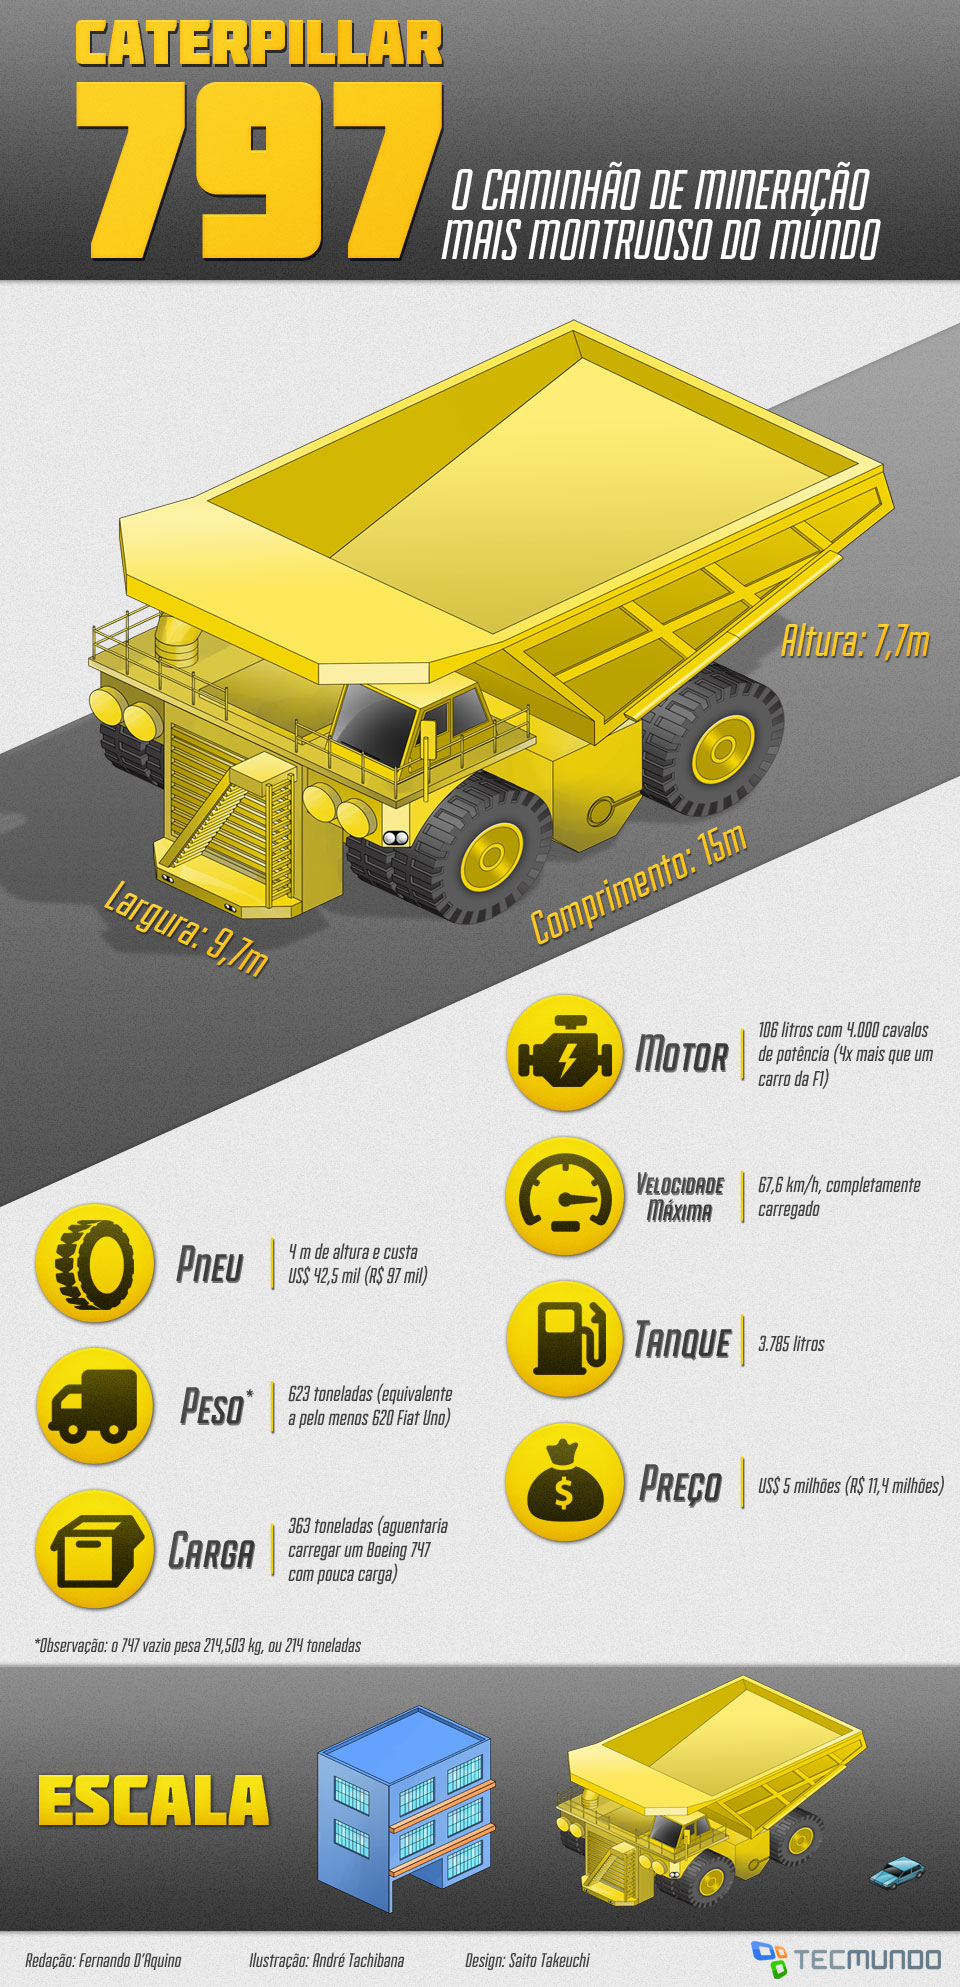 Infogr�fico - Caterpillar 797: o caminh�o mais monstruoso do mundo [ilustra��o]